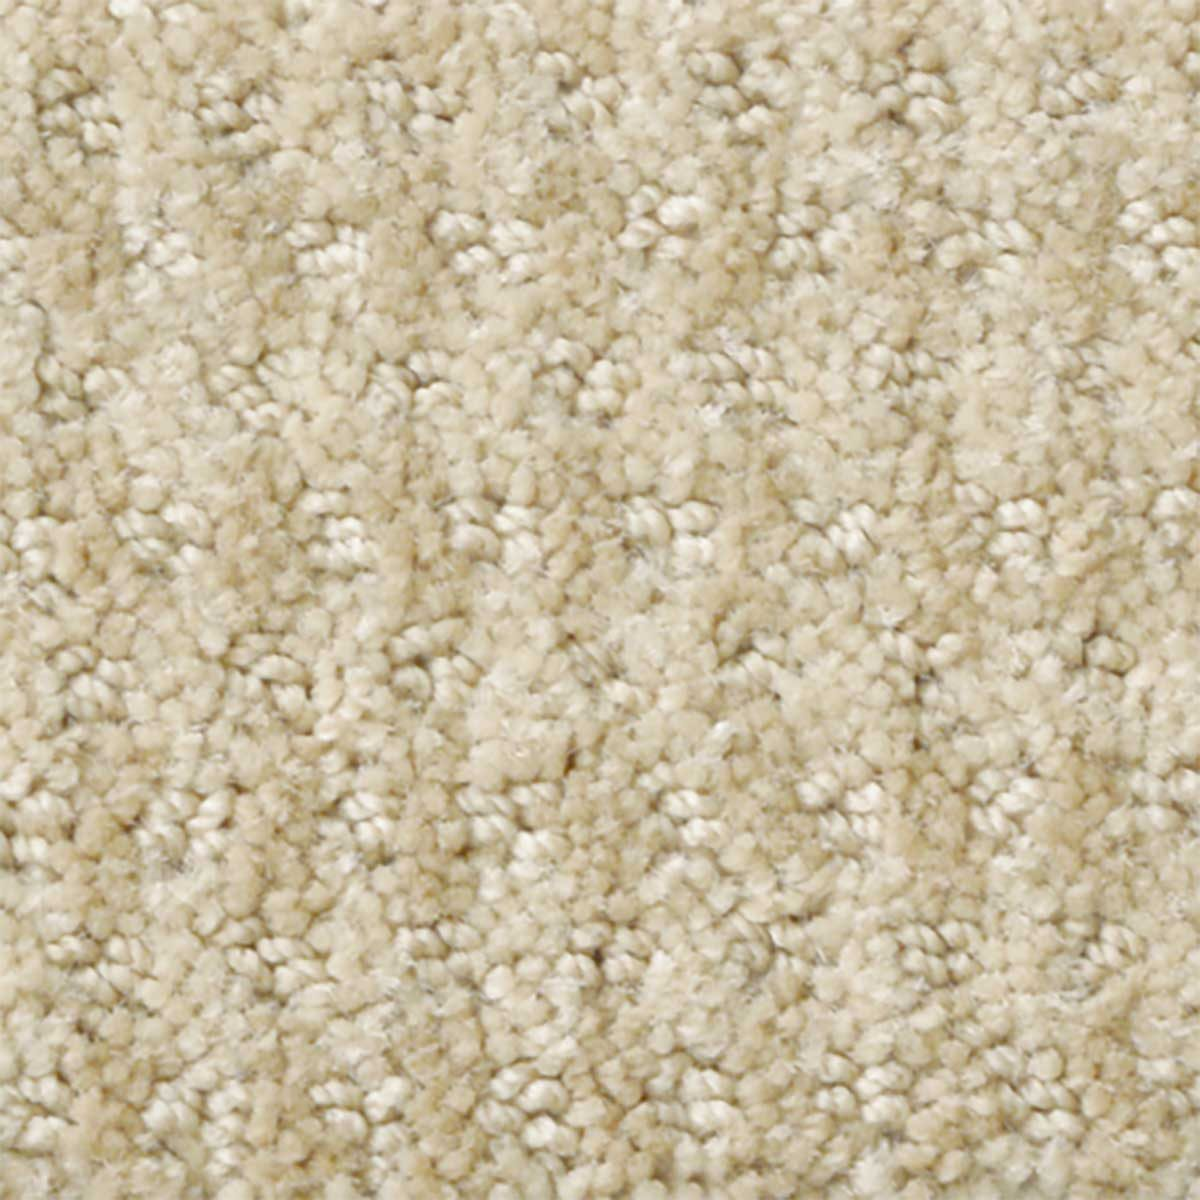 photo of a Stainmaster nylon carpet sample